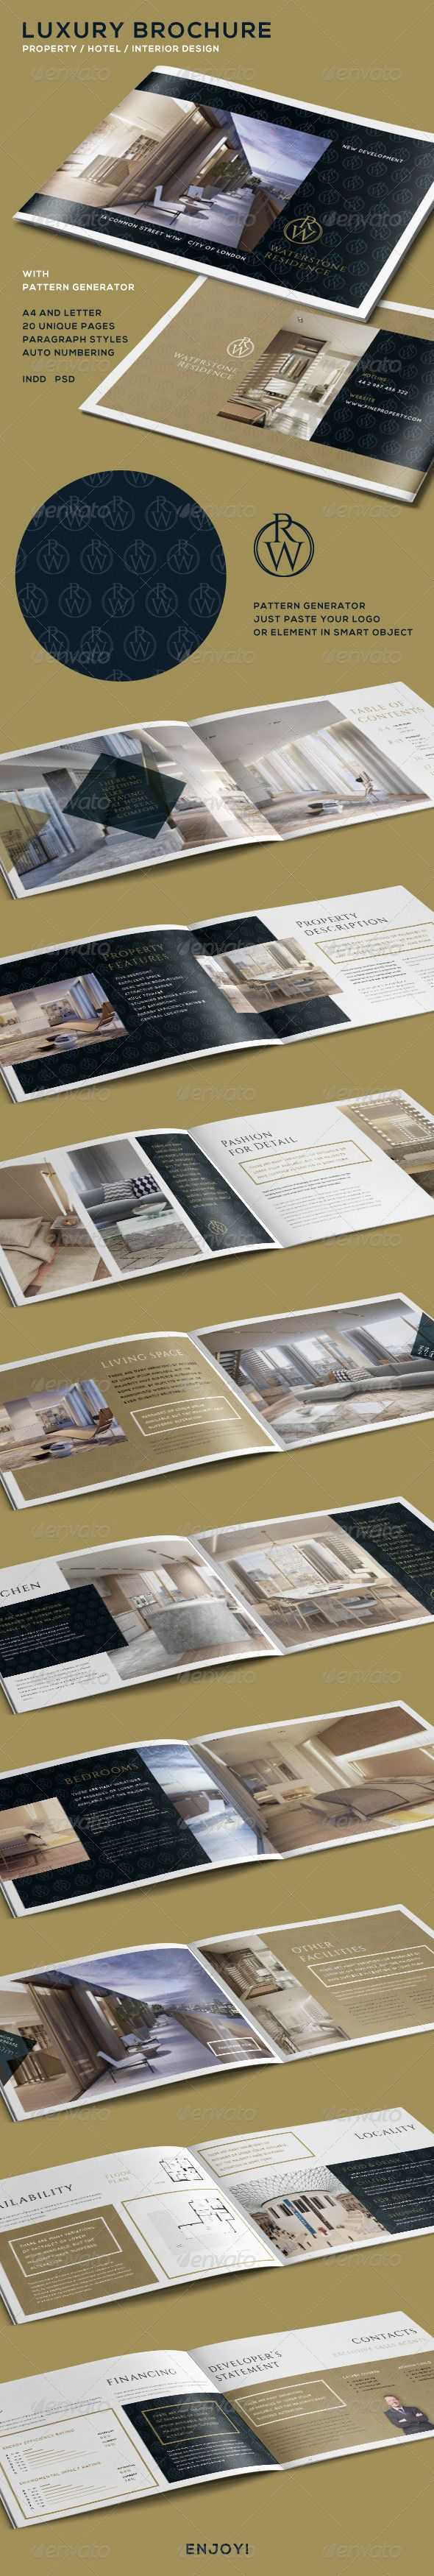 Luxury Brochure for Property  Hotel  Interior — Photoshop PSD #property #black • Available here → https://graphicriver.net/item/luxury-brochure-for-property-hotel-interior/7973509?ref=pxcr